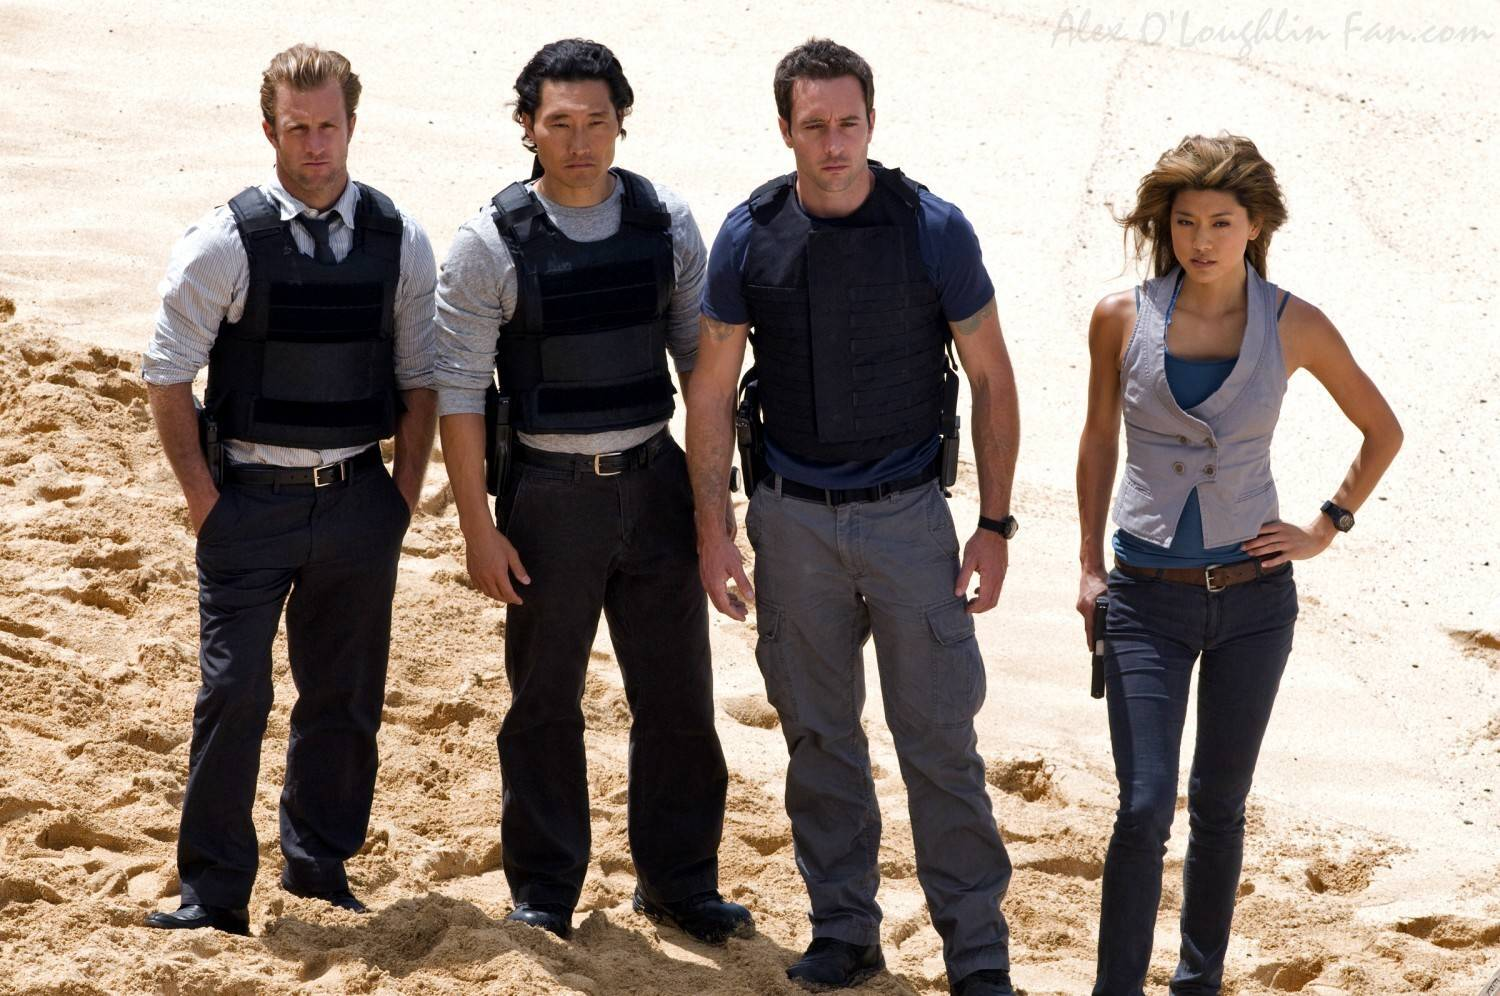 The New Hawaii Five-O Cast